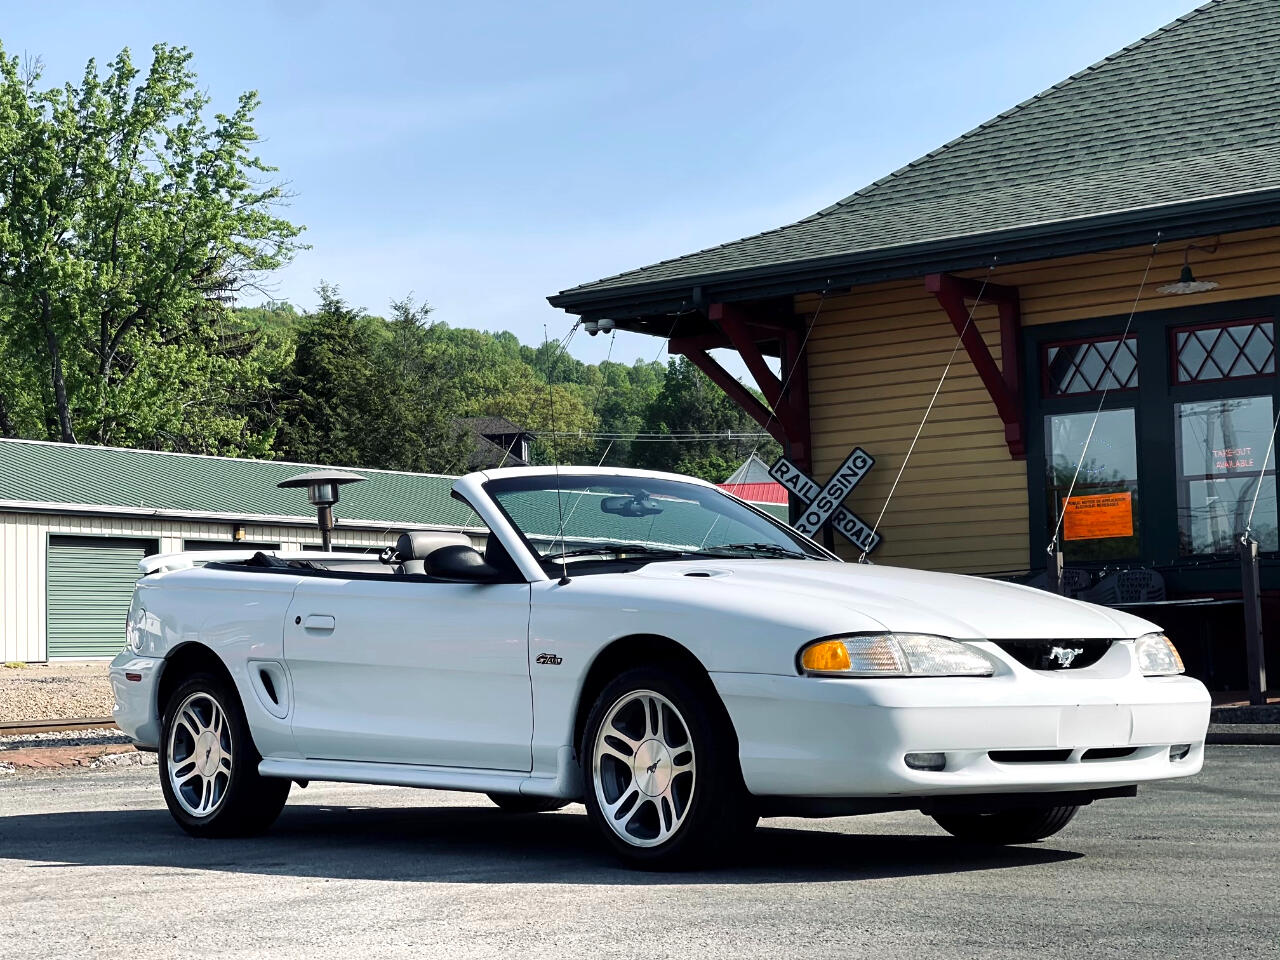 Ford Mustang GT convertible 1997